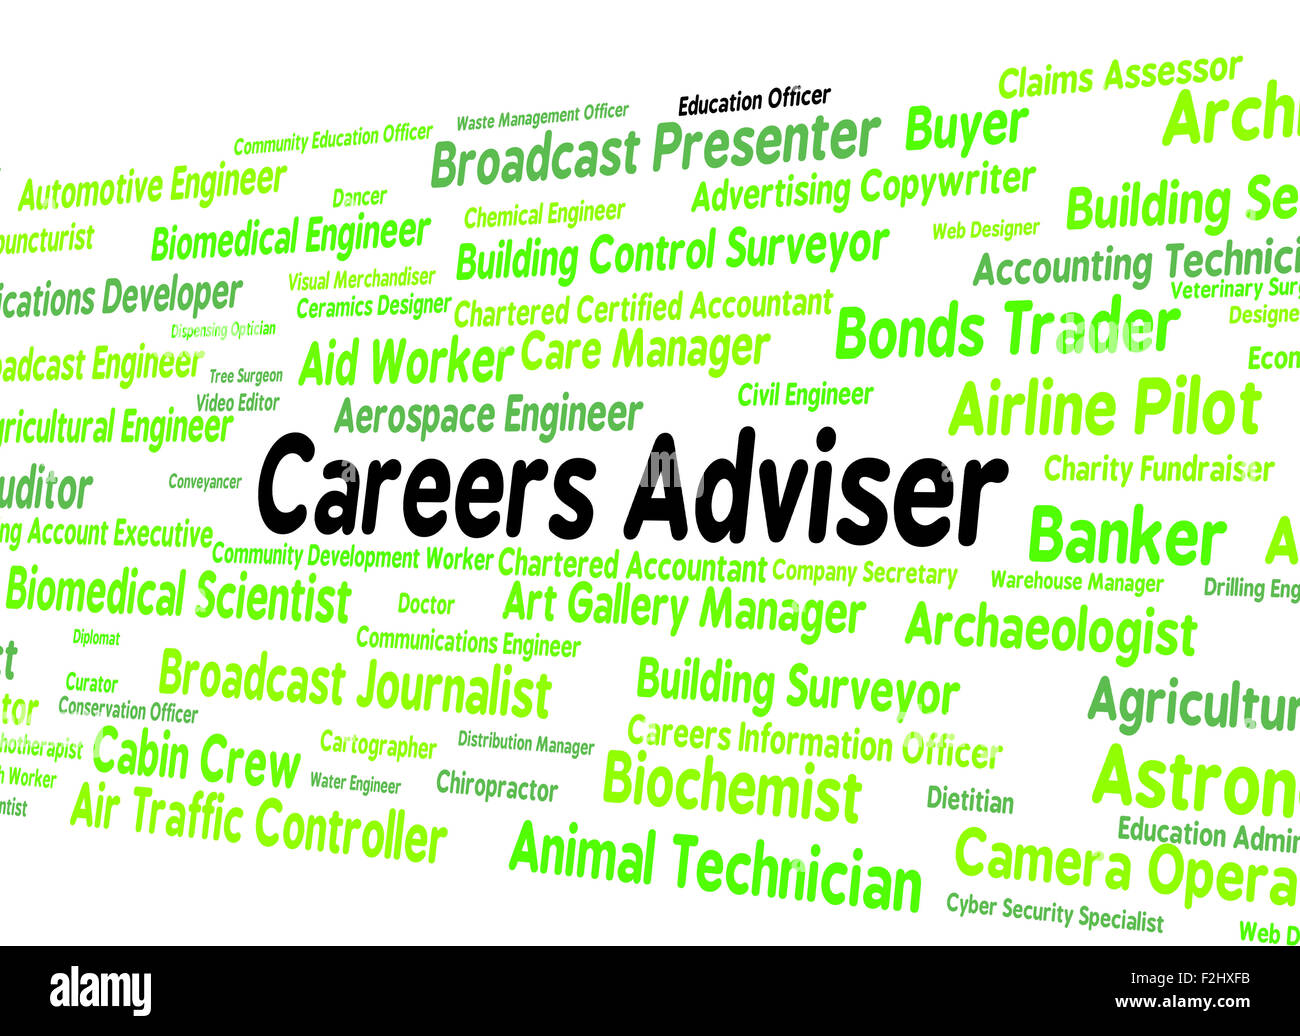 Careers Adviser Meaning Employment Position And Tutor - Stock Image